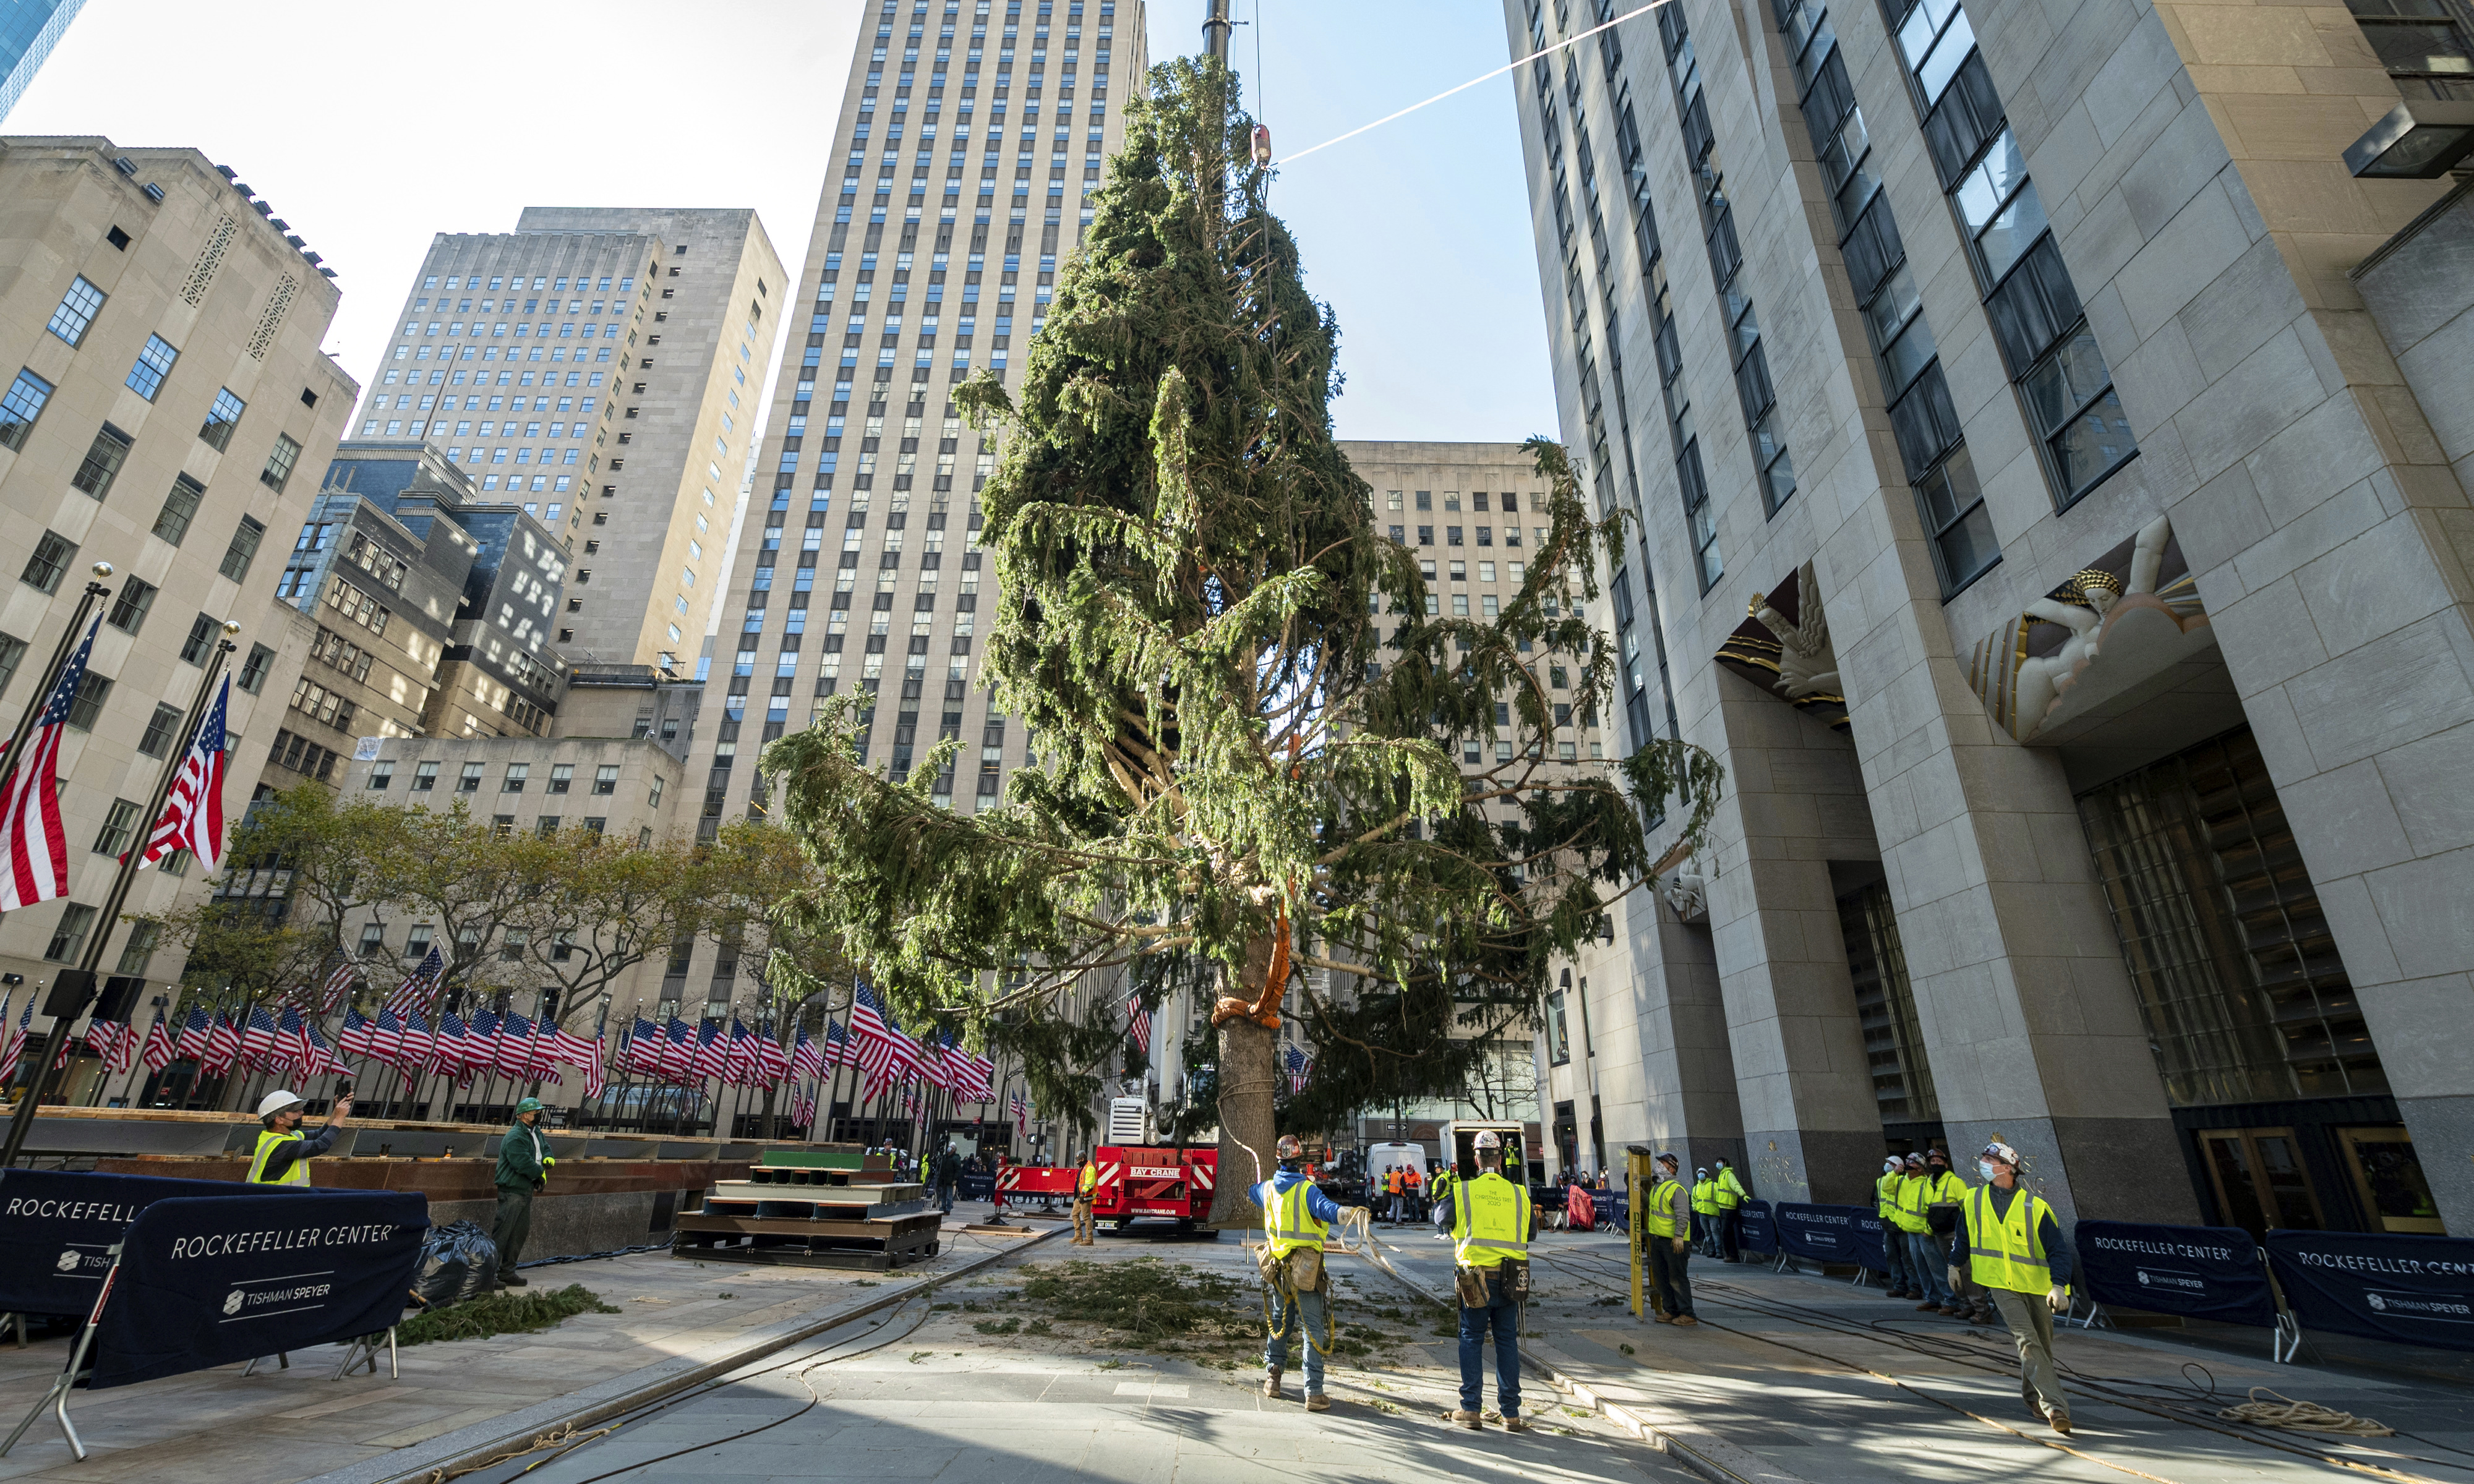 Christmas Trees In Queens, Ny 2021 Christmas Trees Put On Display In U S Cities Draw Mockery And Comparisons To 2020